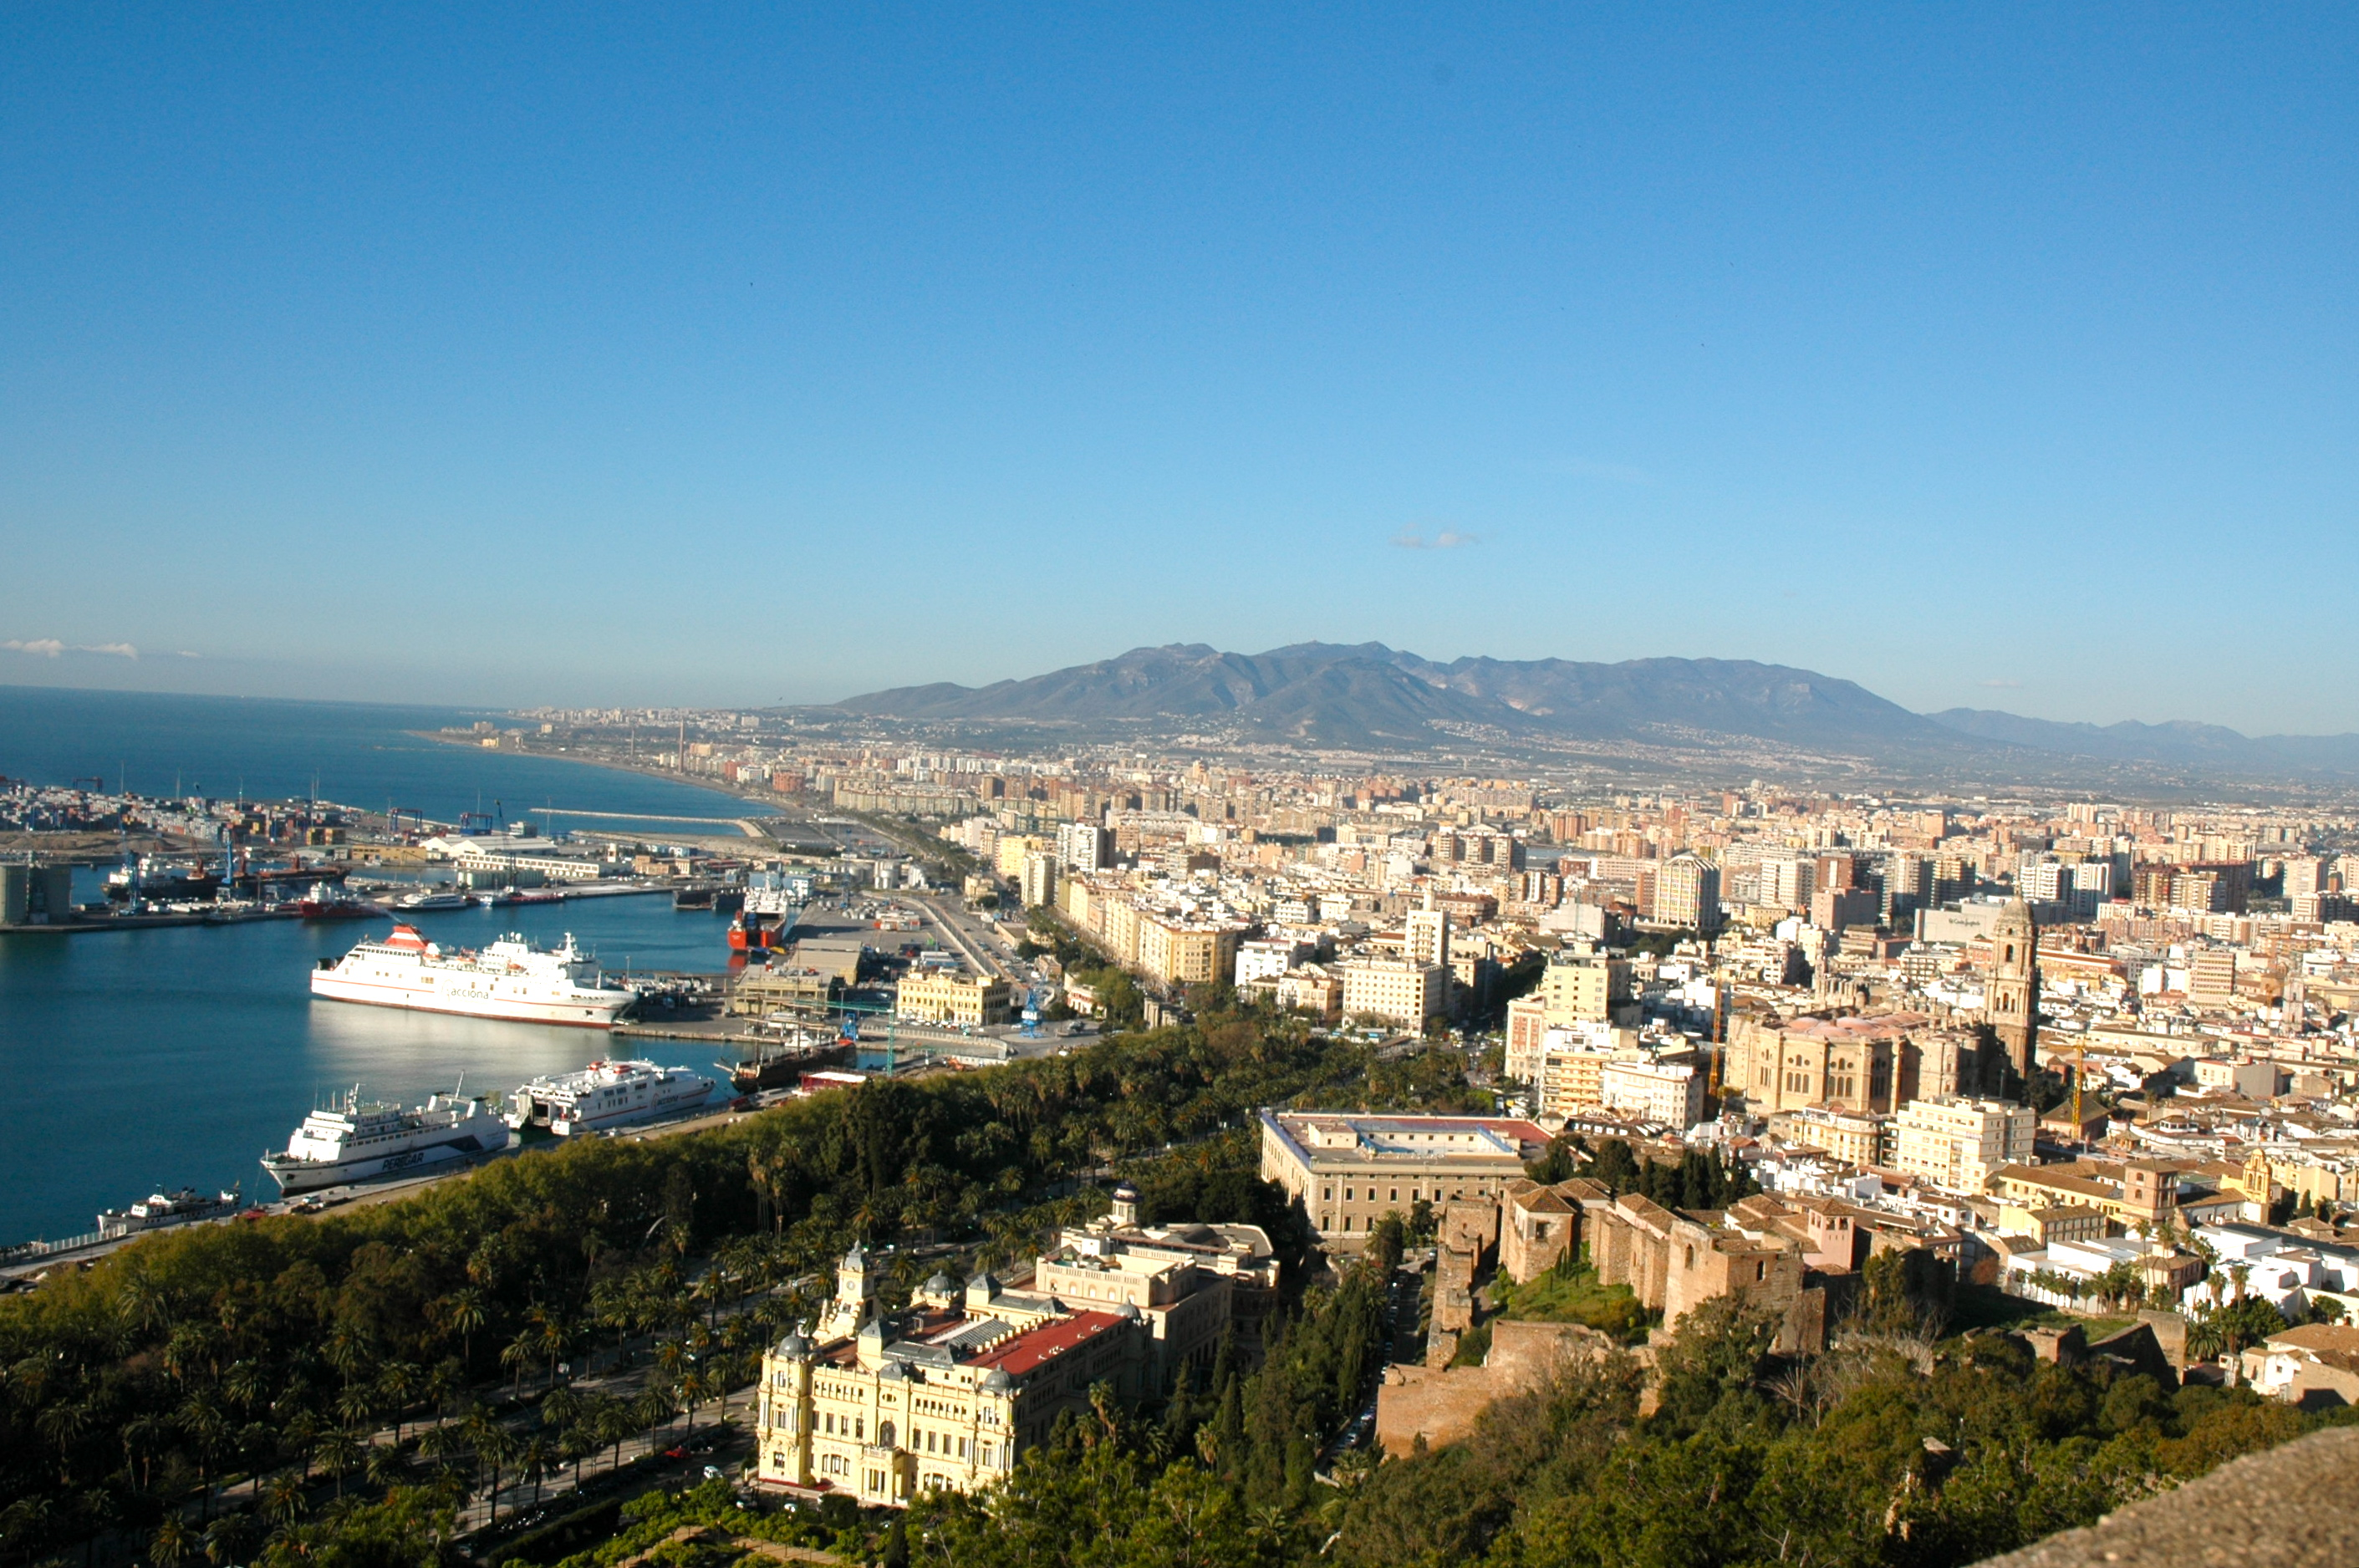 MÁLAGA – A CAPITAL DA COSTA DO SOL